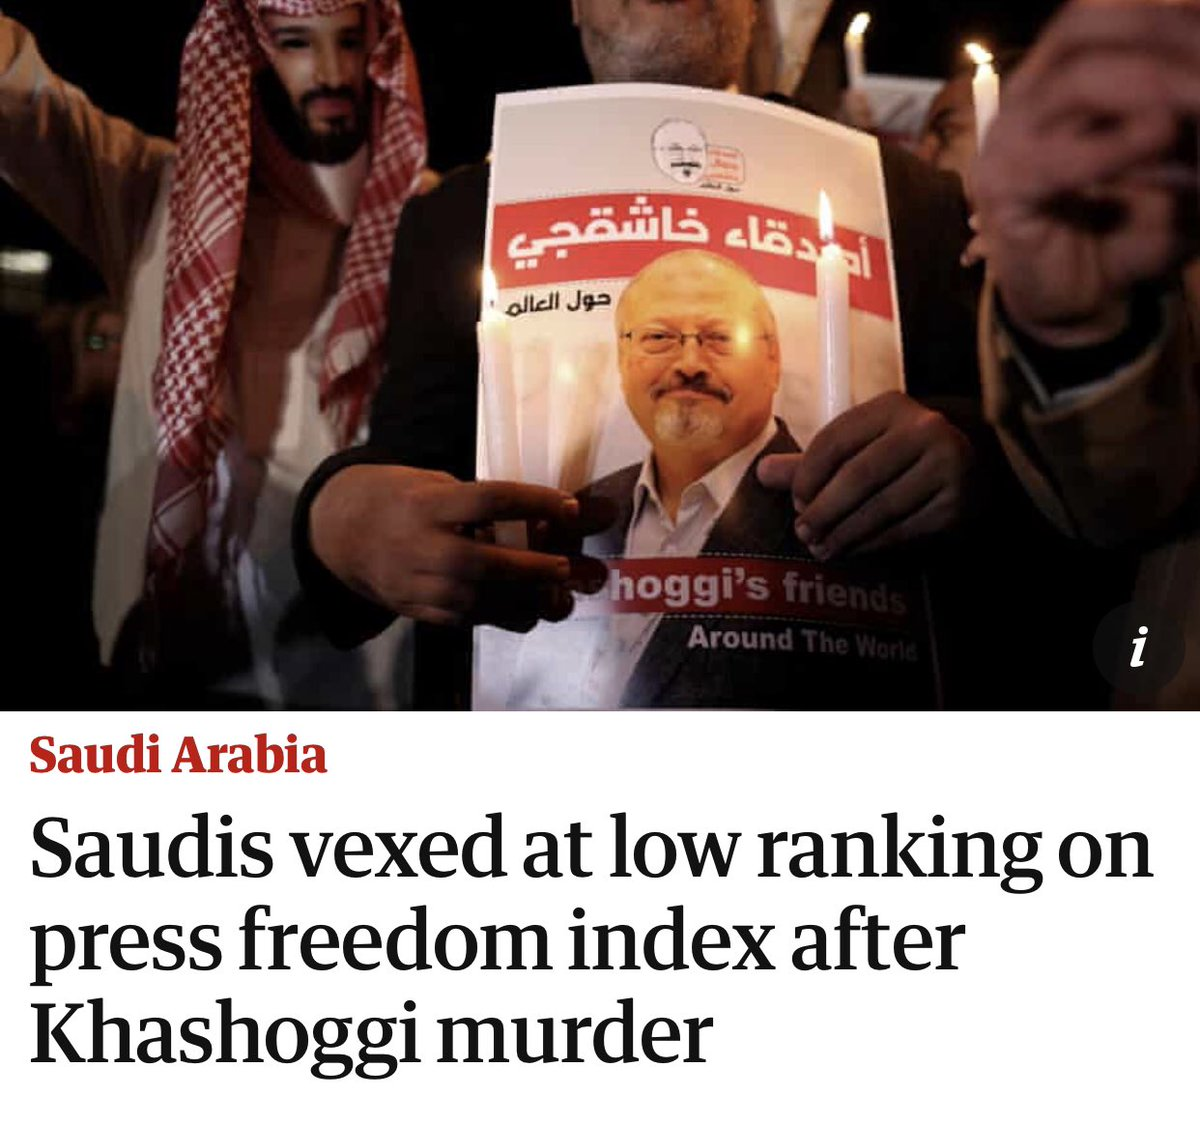 After hacking a journalist to pieces with a bone saw in their own consulate, Saudi officials are wondering why their country scored so low in press freedom rankings... https://www.theguardian.com/world/2019/jul/10/saudi-press-freedom-index-ranking-reporters-without-borders…